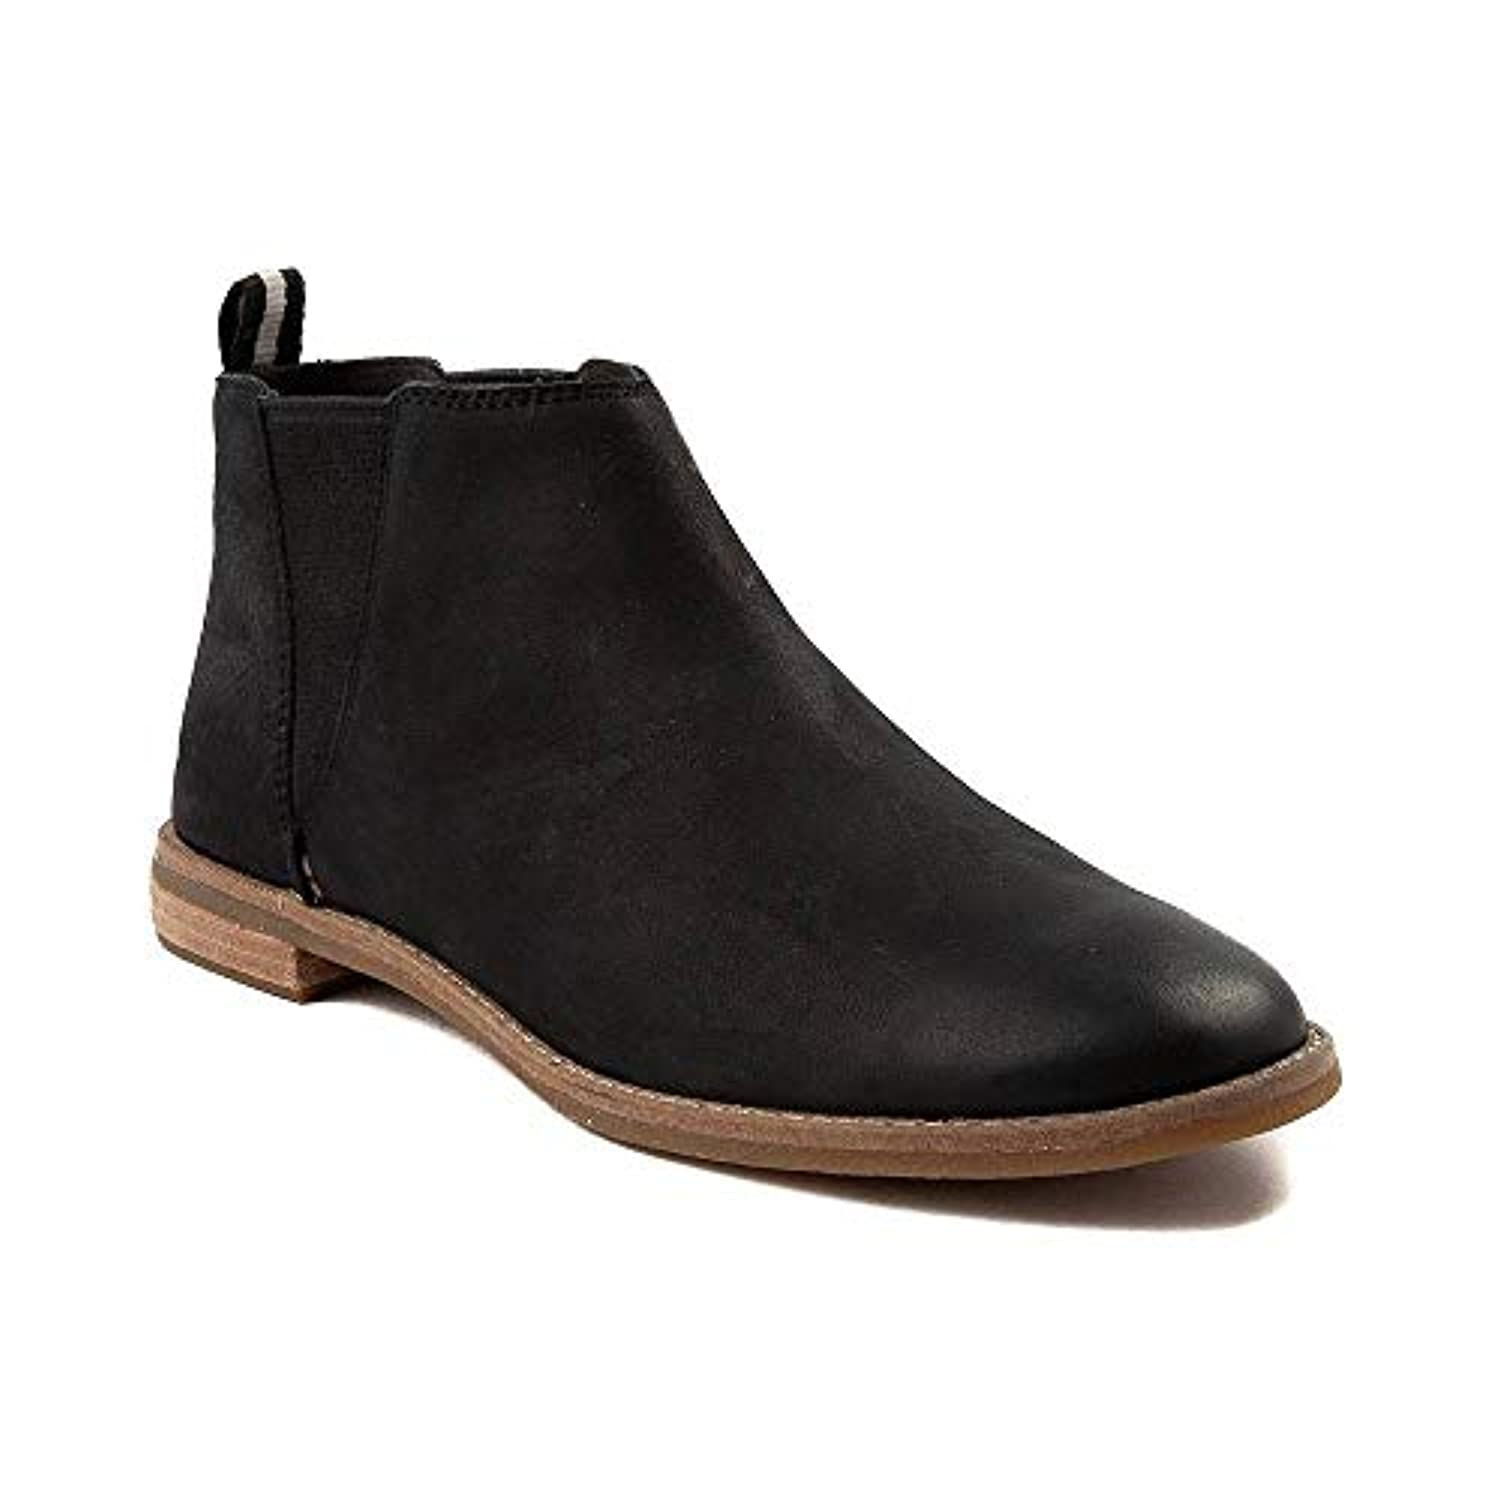 [SPERRY TOPSIDER(スペリートップサイダー)] 靴?シューズ レディースボートシューズ Womens Sperry Top-Sider Seaport Daley Chelsea Boot ブラック US...